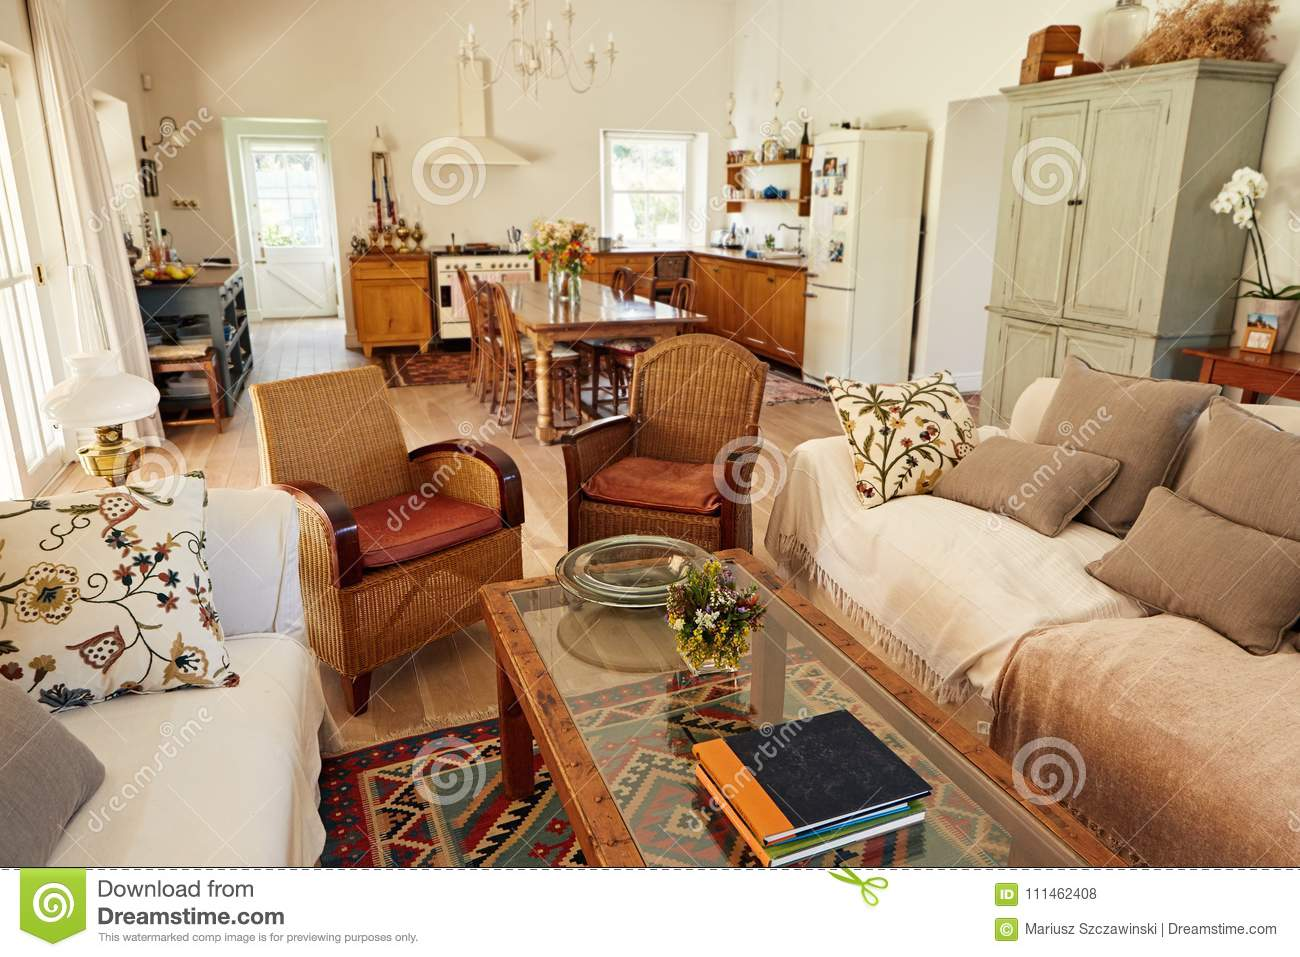 Interior Of The Lounge And Kitchen In A Country Home Stock Photo Image Of Interior Background 111462408